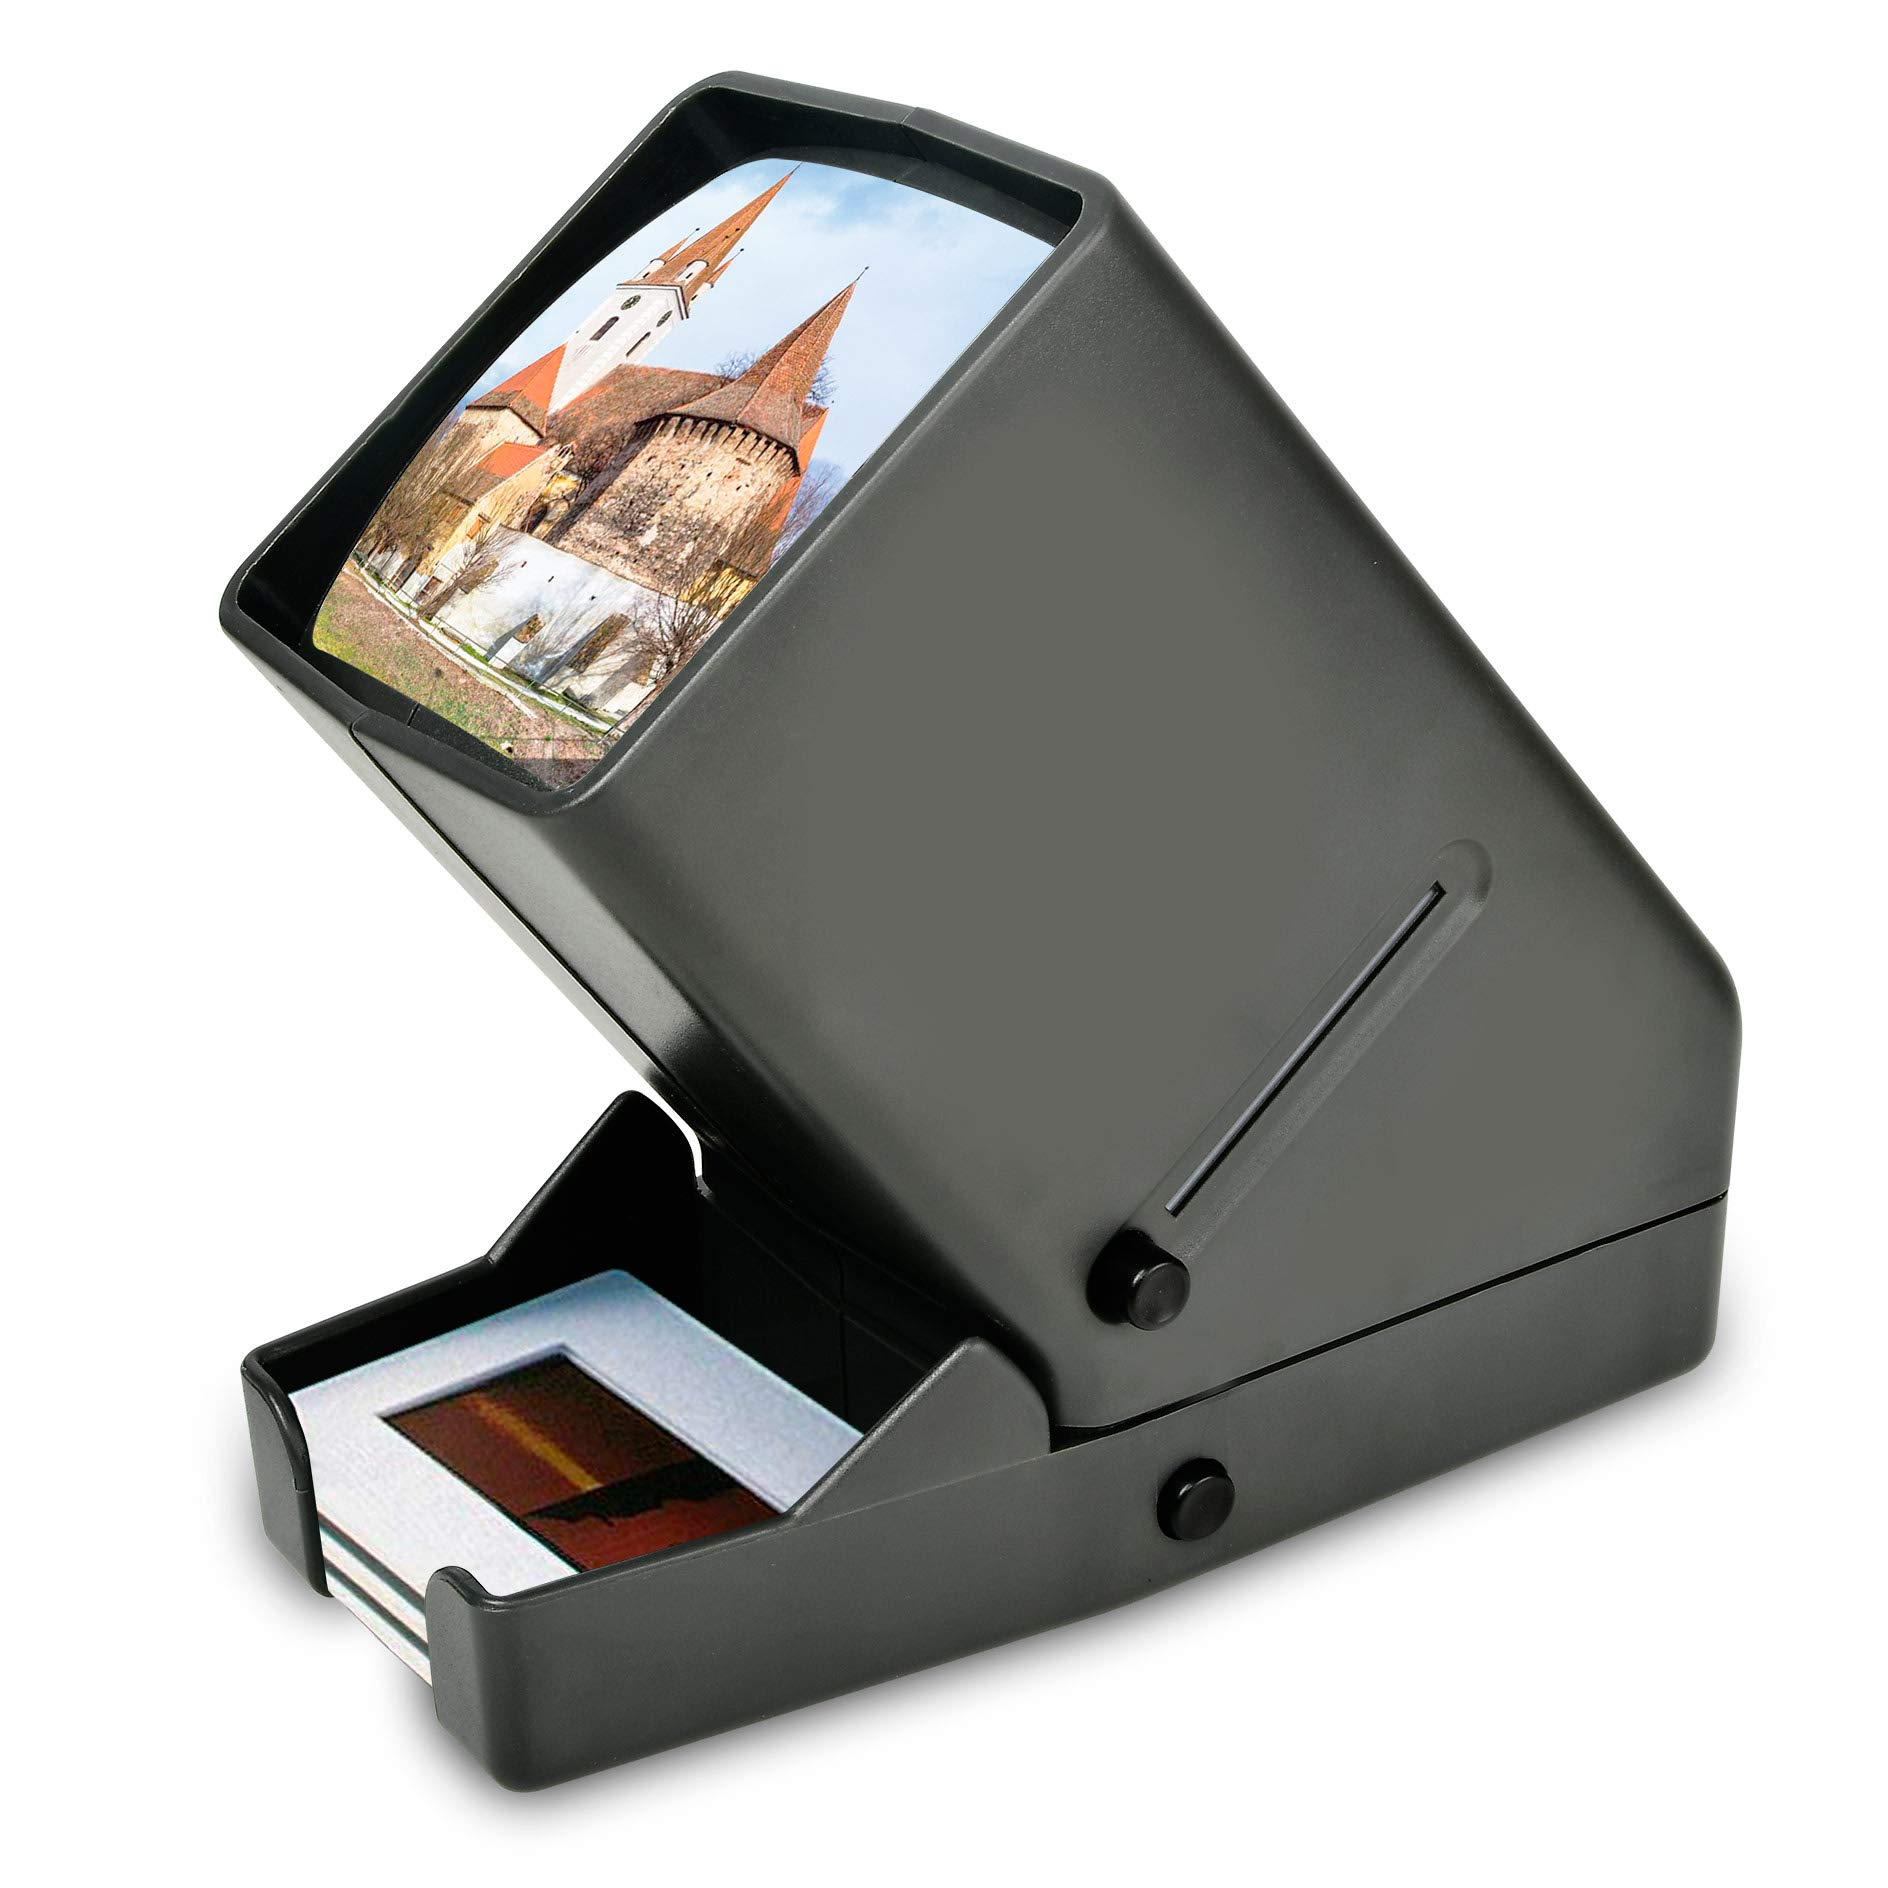 Rybozen 35mm Film and Slide Viewer, 3X Magnification and Desk Top LED Lighted Illuminated Viewing and Battery Operation-for 35mm Slides & Positive Film Negatives by Rybozen (Image #1)